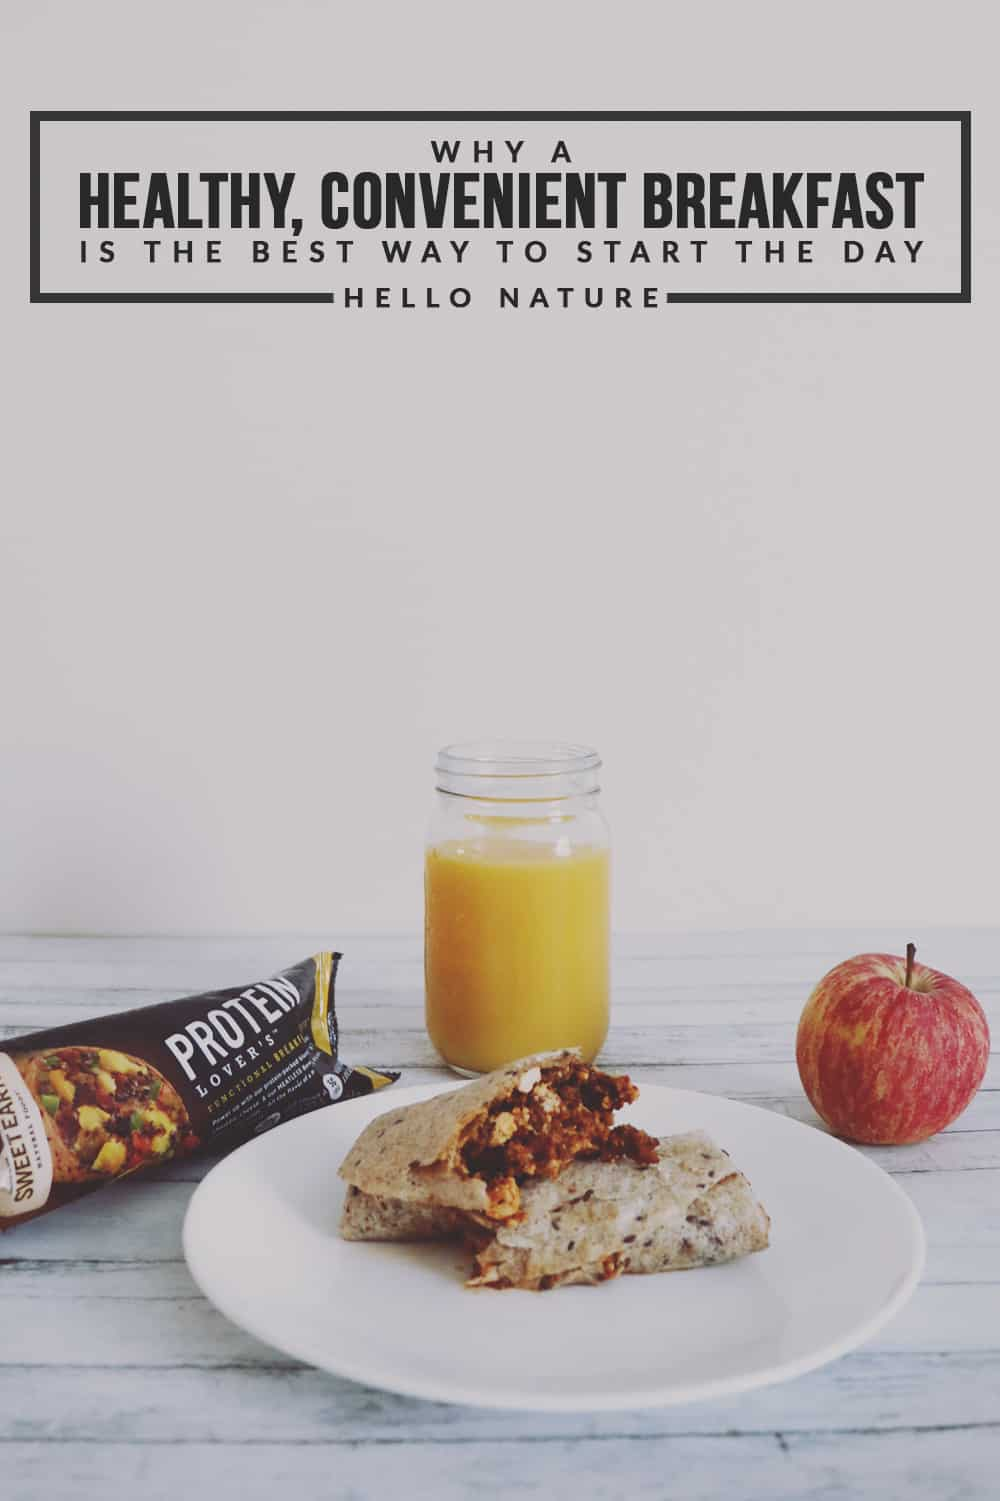 Need some extra time in your morning? A healthy, convenient breakfast with Sweet Earth Natural Foods are a great way to start the day!